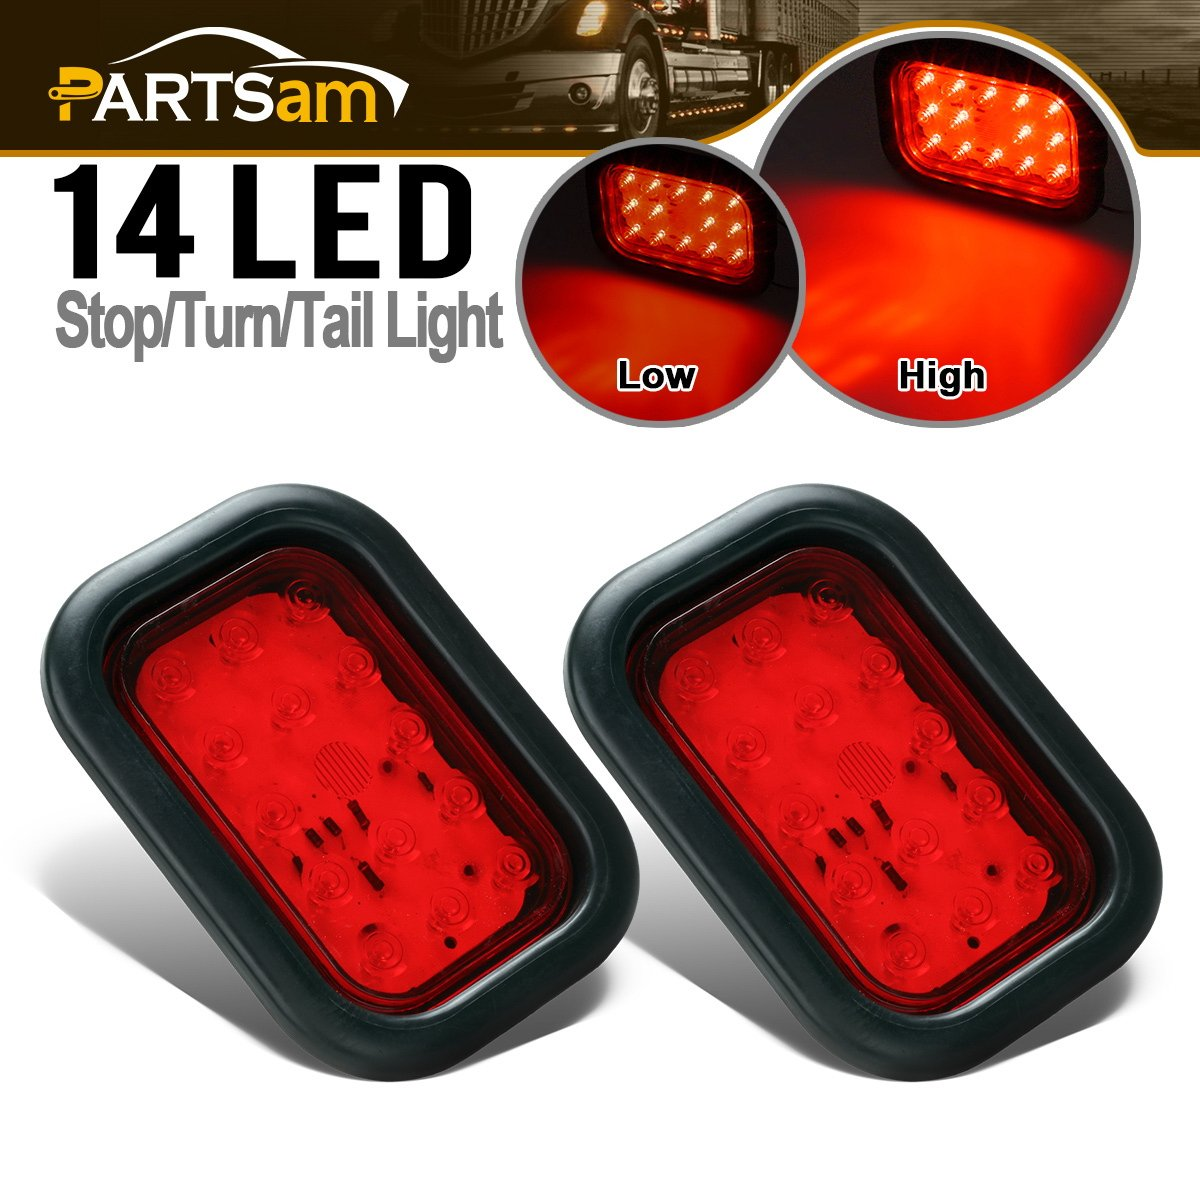 Partsam 2Pcs Universal Red 5''x3'' inch Rectangular Stop Turn Tail 14 LED Brake Truck Trailer Hitch Lights Sealed Led Marker Lights Flush Grommet mount Waterproof 12V, 5x3 rectangle tail lights by Partsam